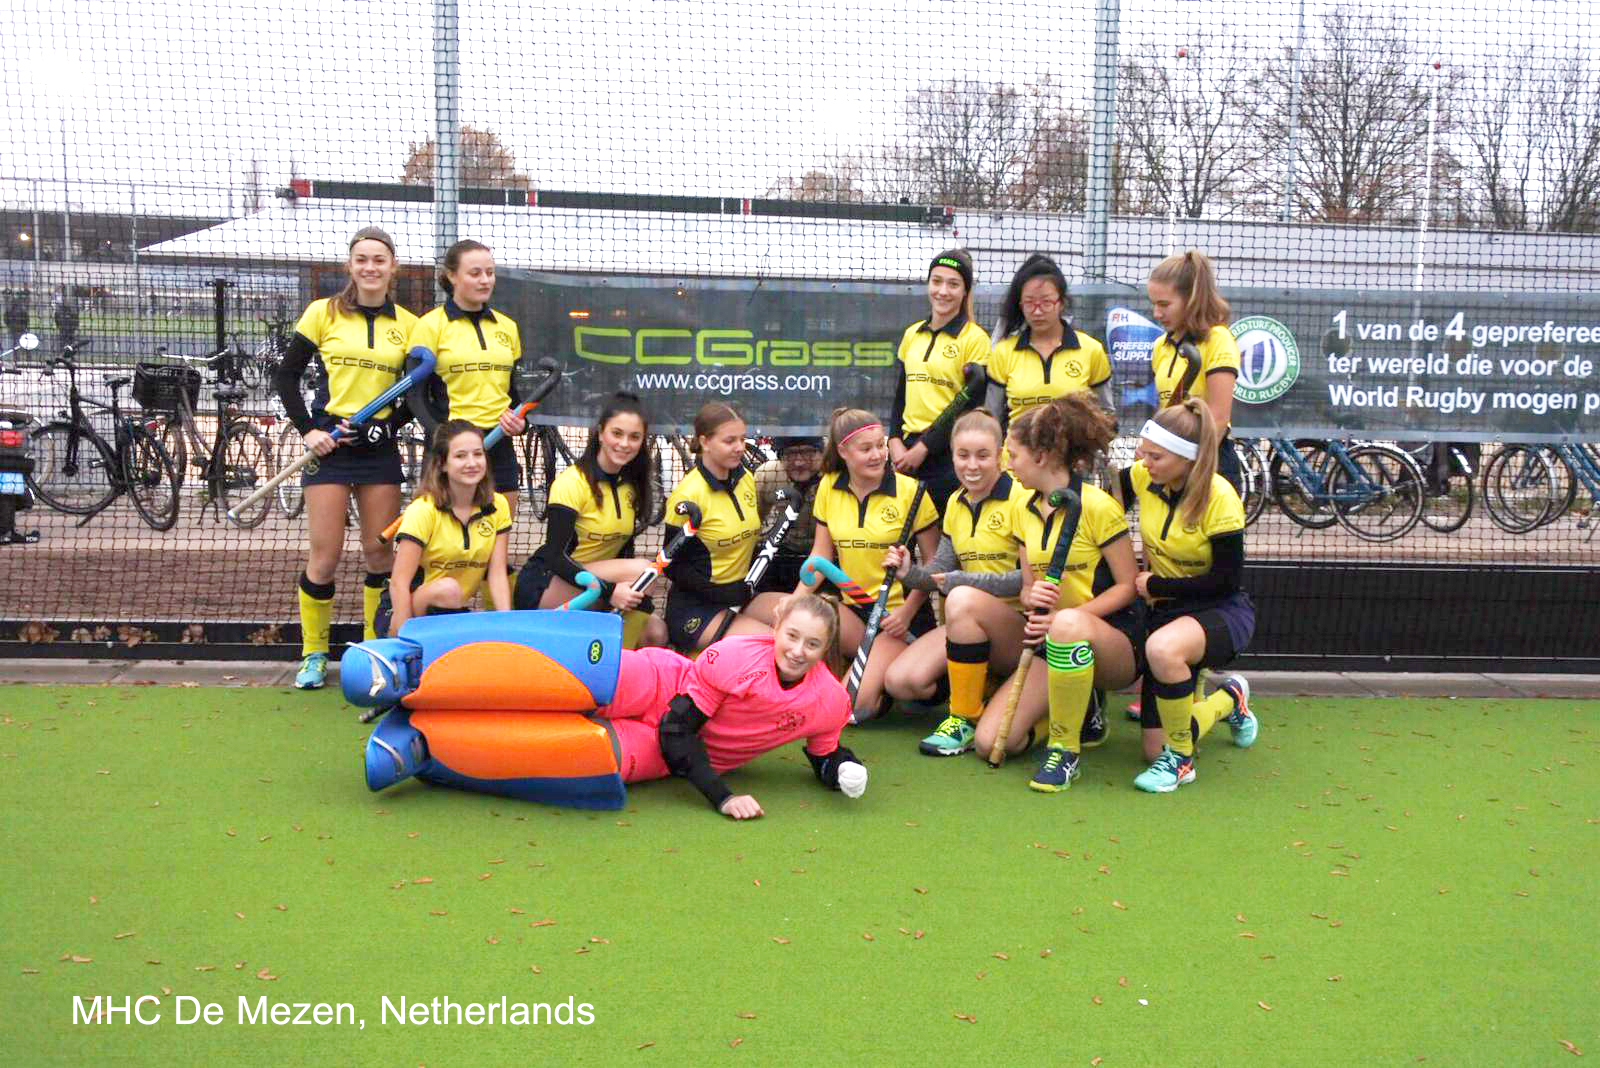 CCGrass hockey fields prove a winner in the Netherlands12